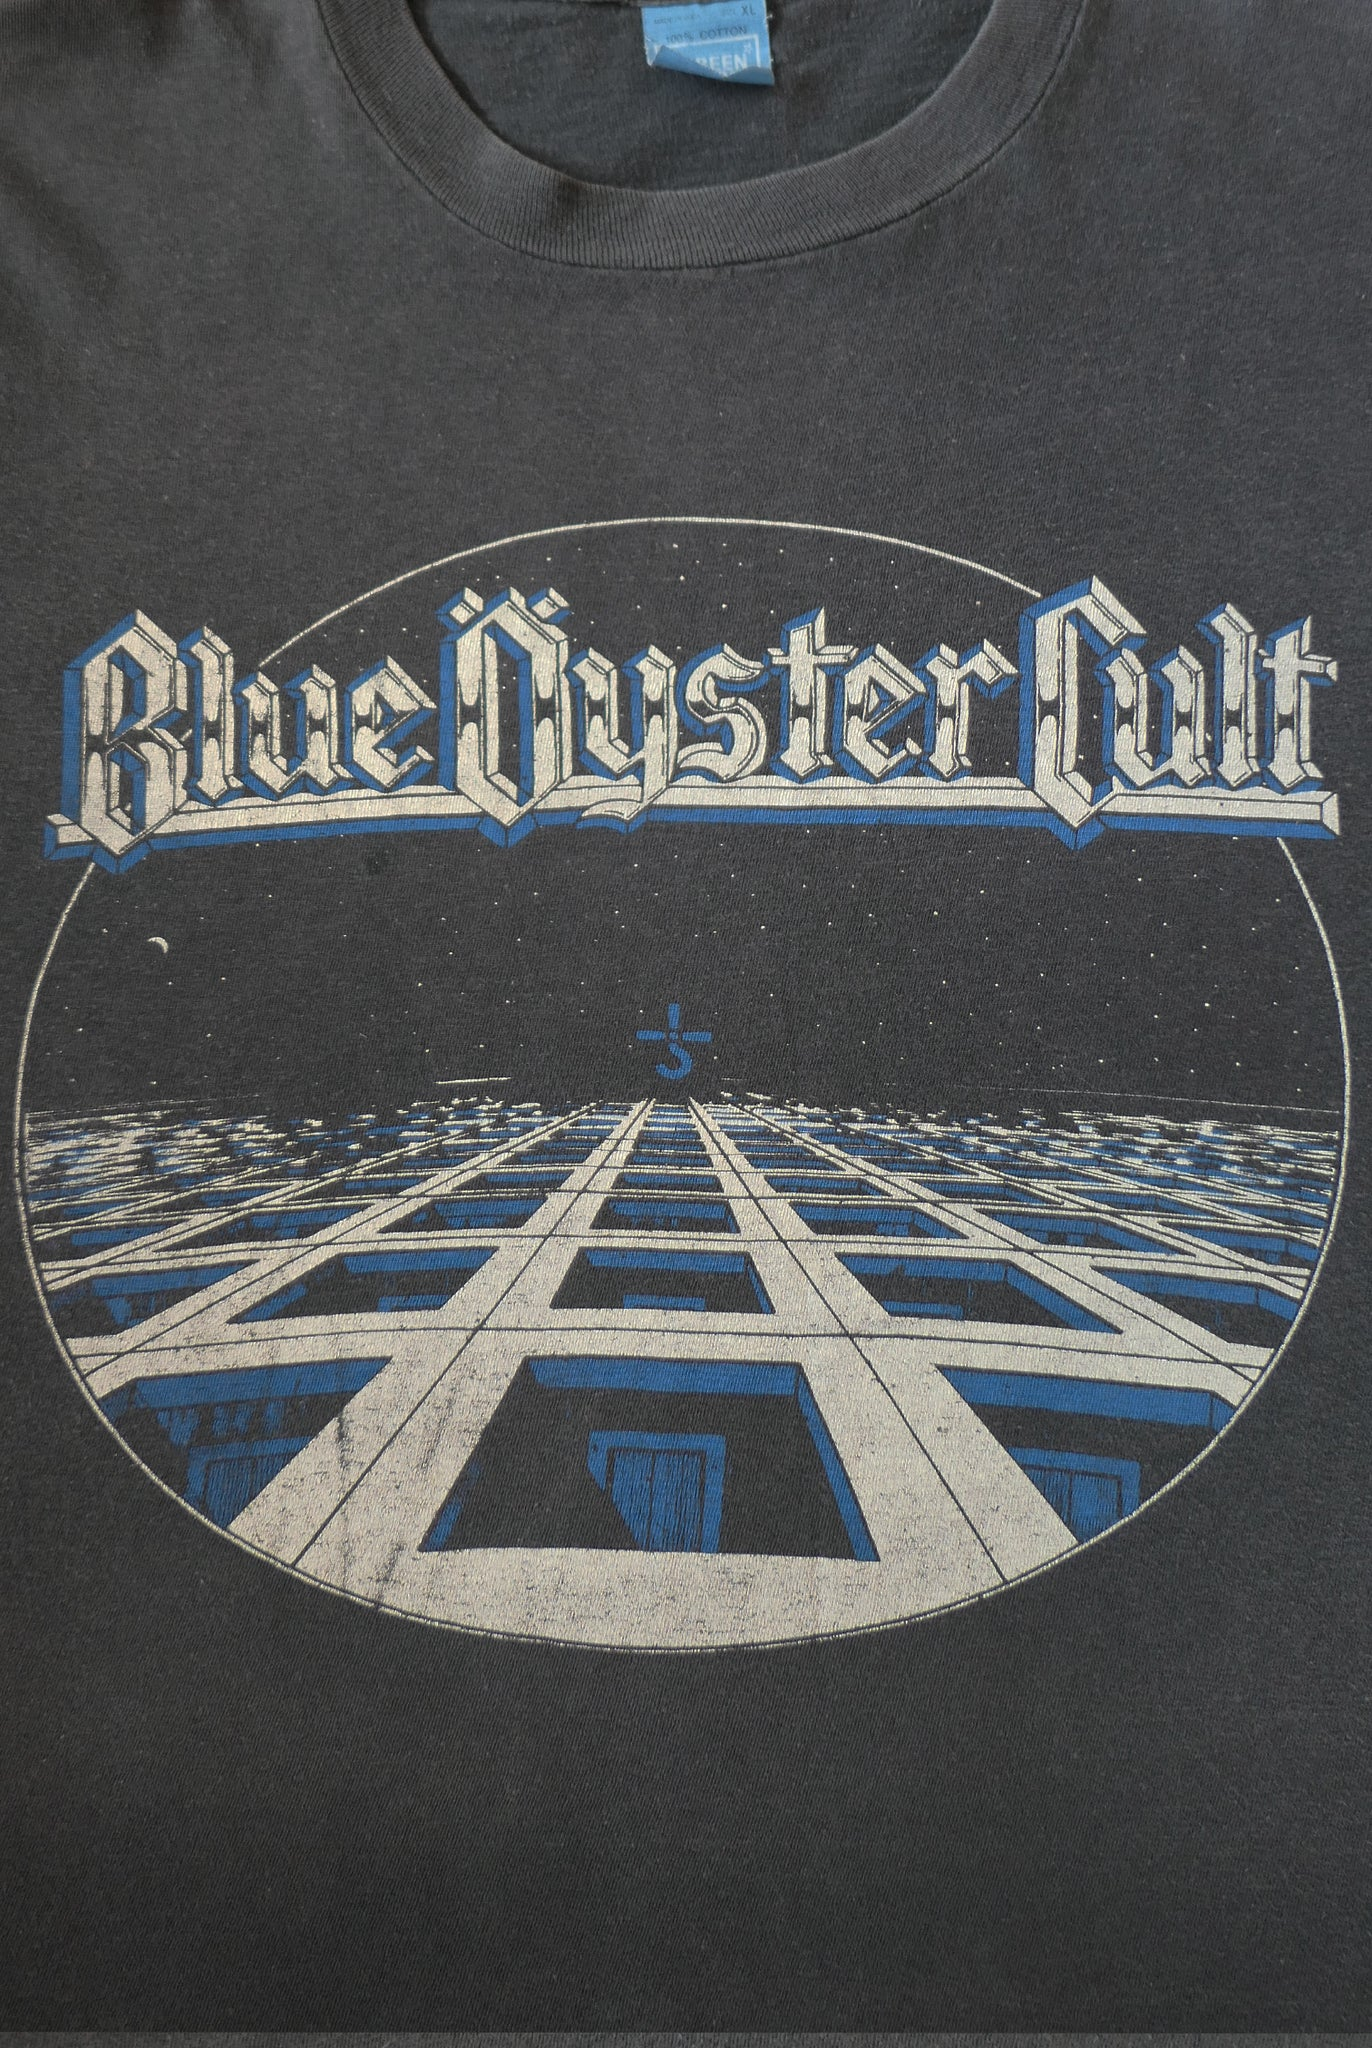 vintage retro 1980s 80s 1981 blue oyster cult rock band music t-shirt